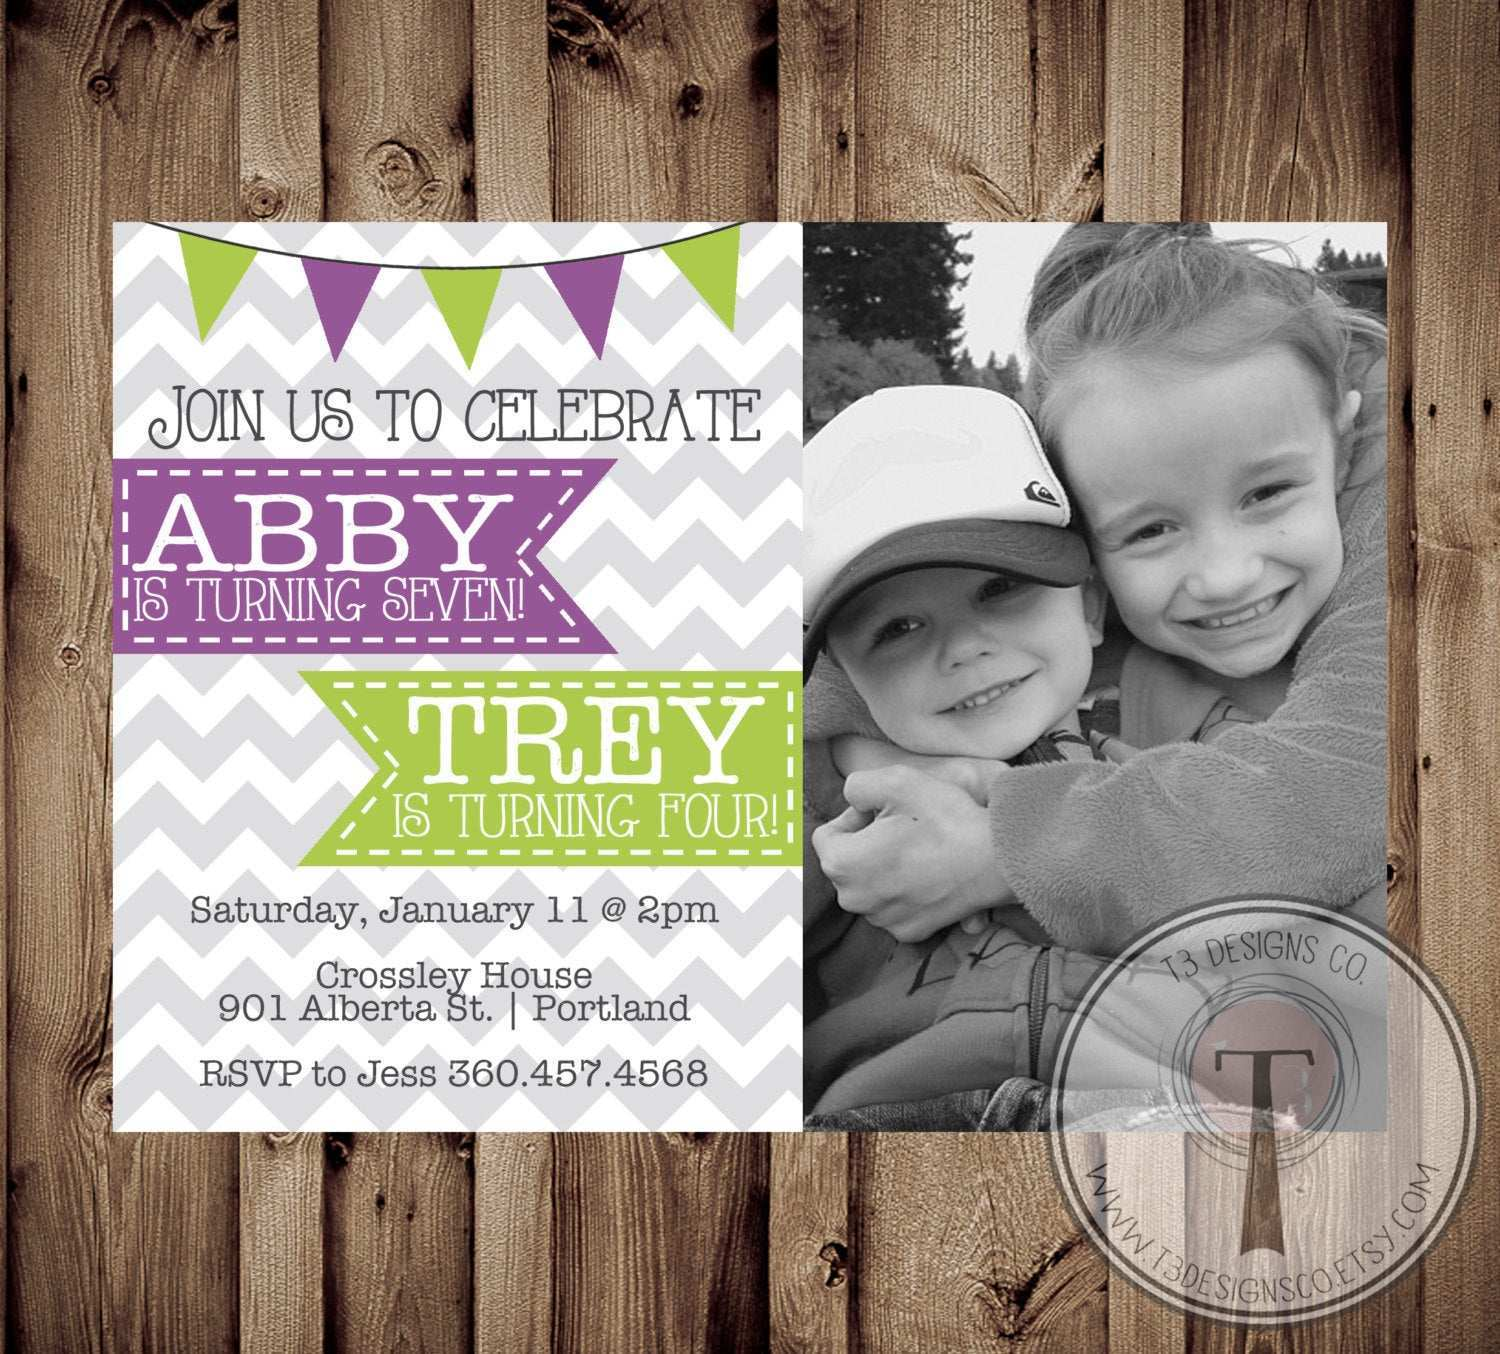 99 Free Printable Joint Birthday Party Invitation Template Now for Joint Birthday Party Invitation Template